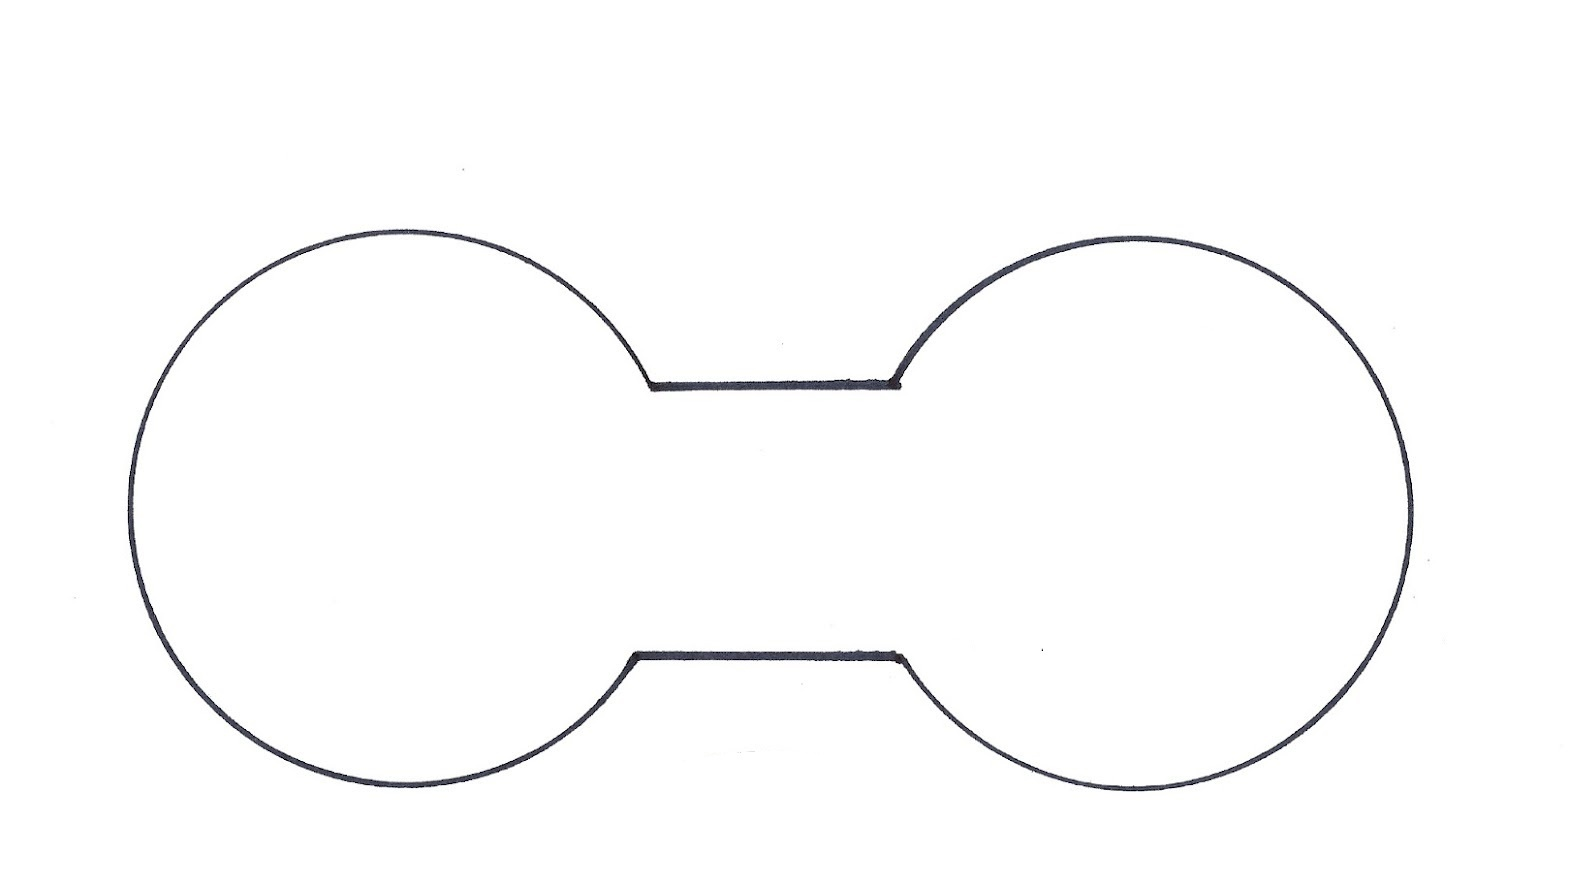 Free Printable Mickey Mouse Ears Template, Download Free Clip Art - Free Printable Minnie Mouse Ears Template